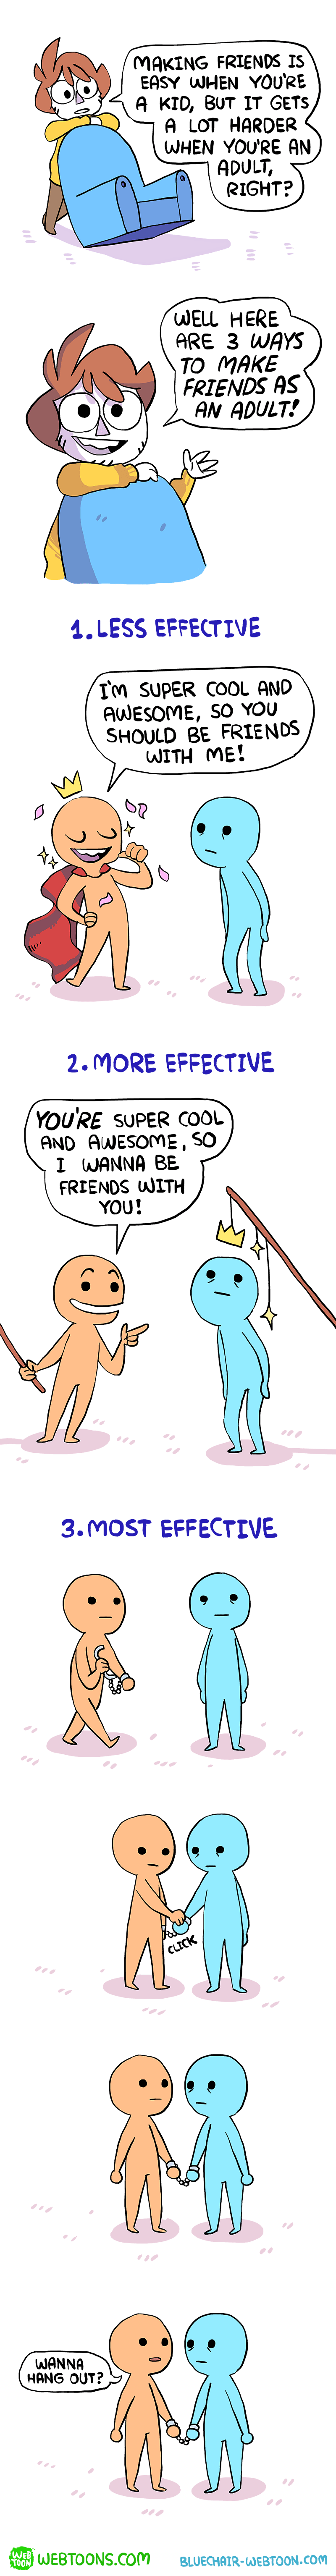 web comics friends adult Friendship